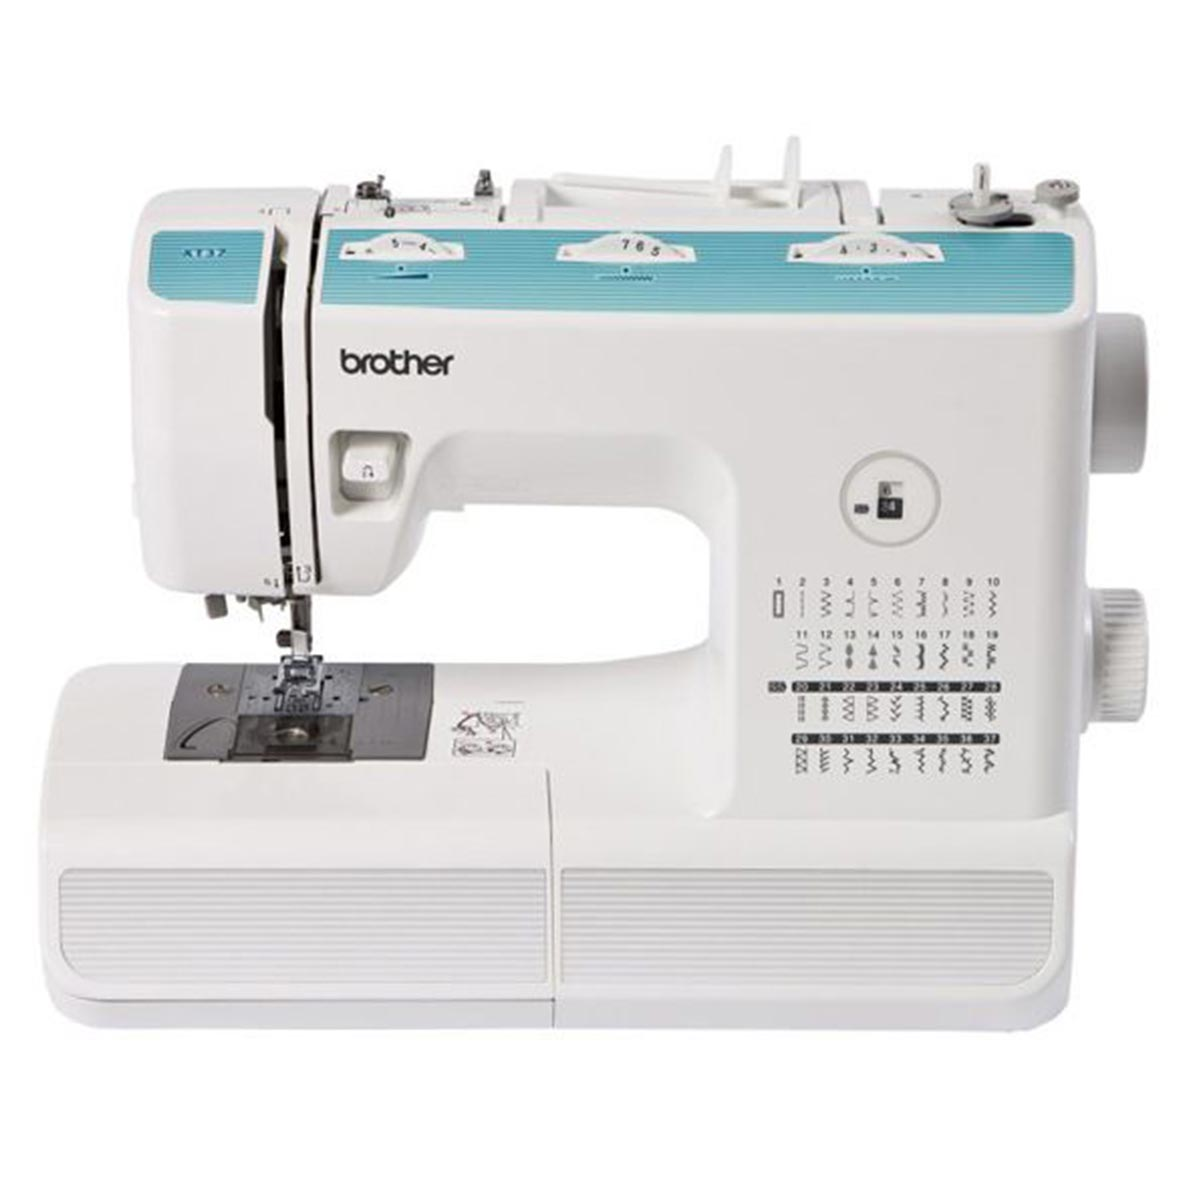 brother xt37 sewing machine sewing market